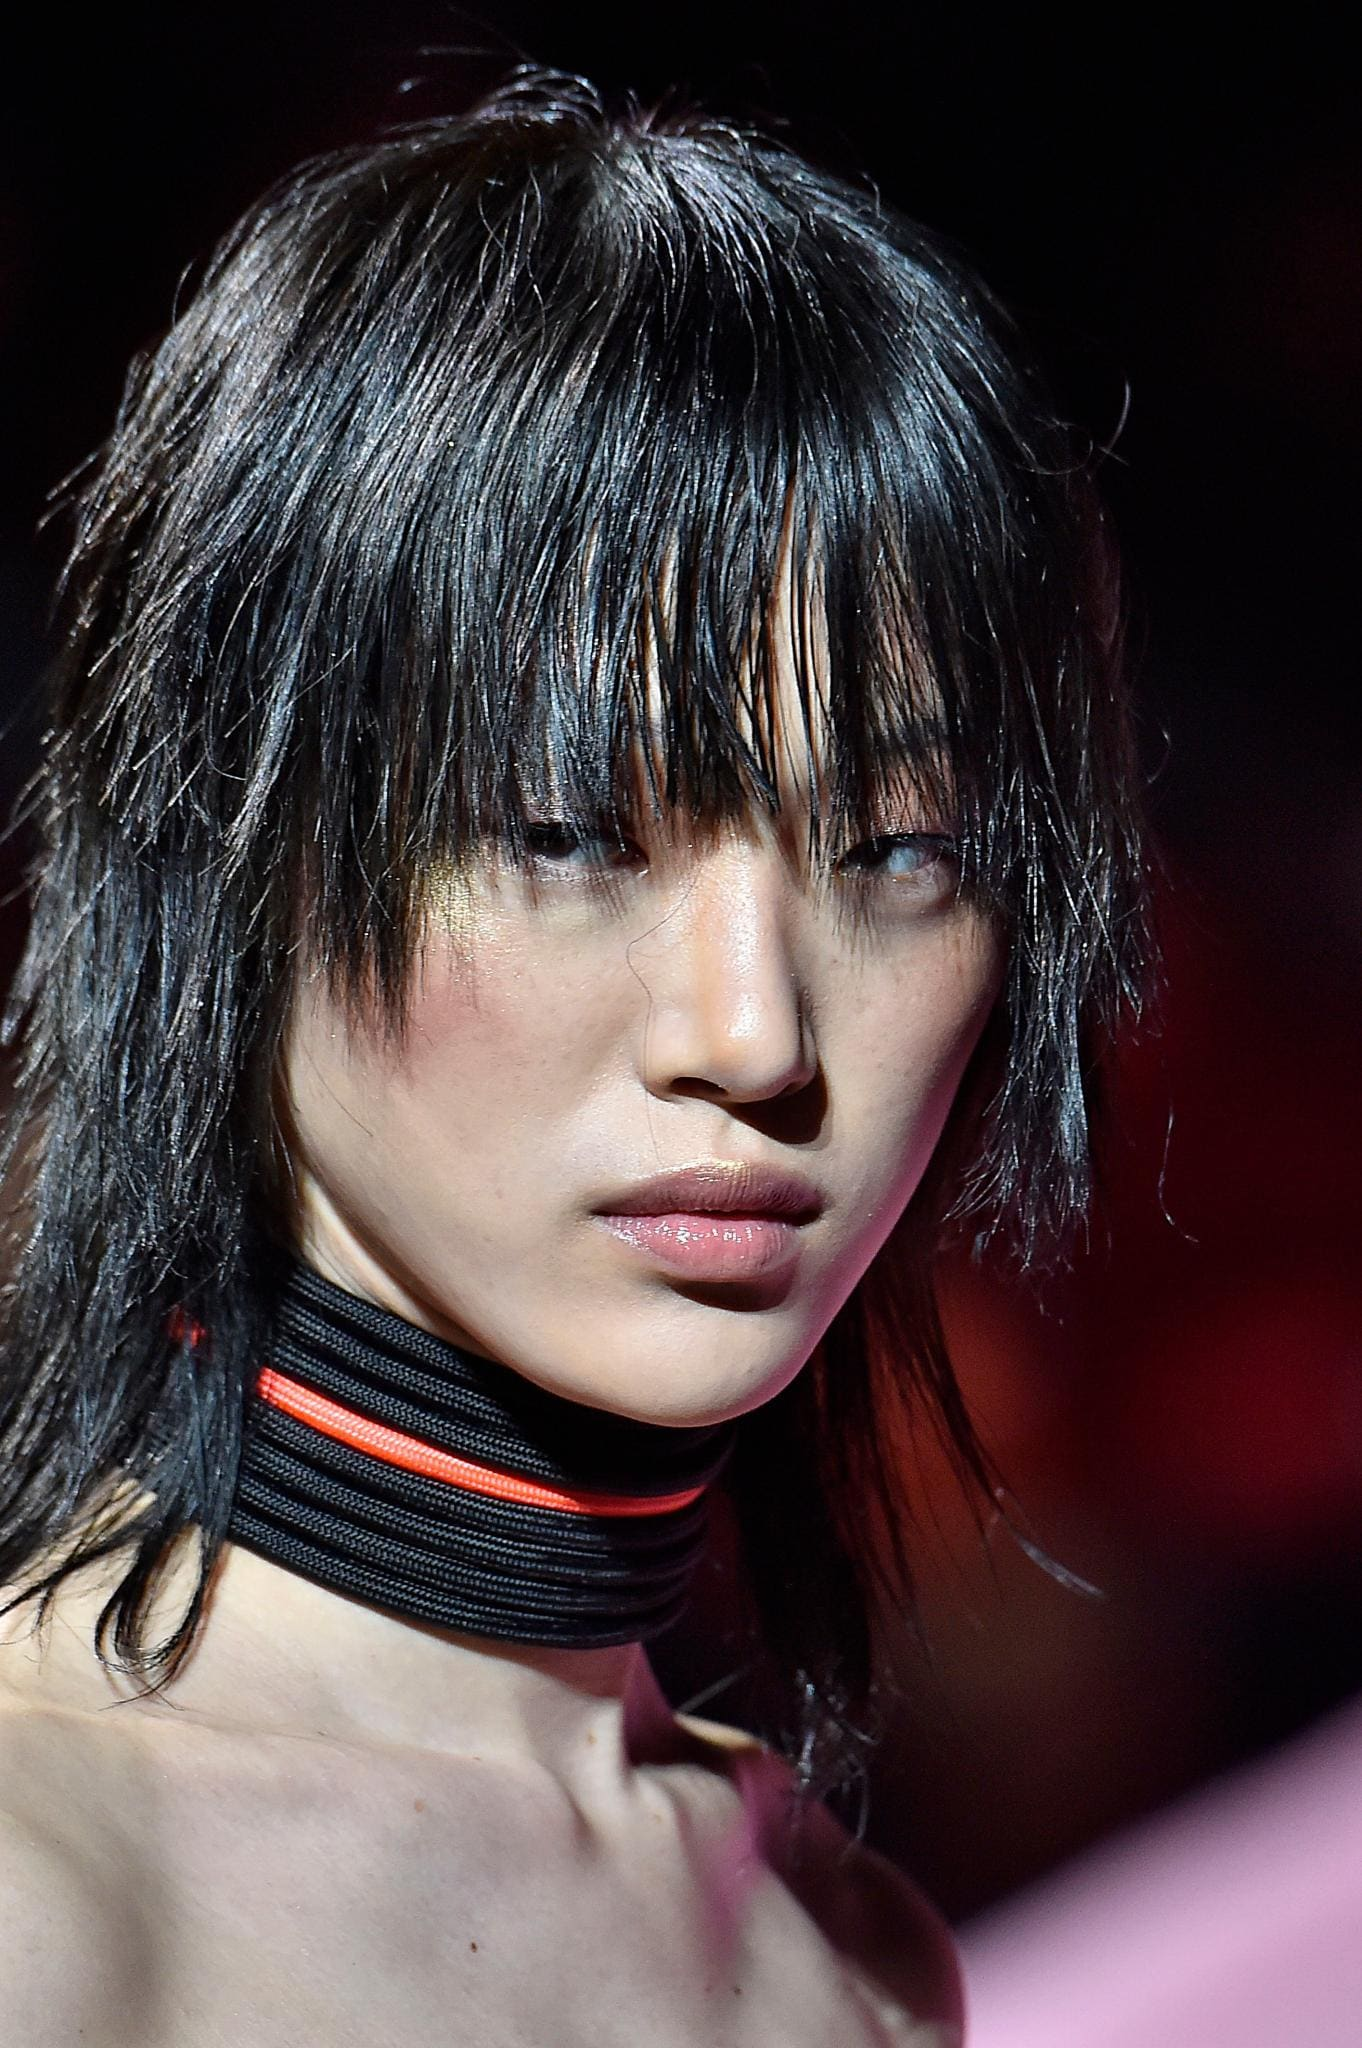 Retro hairstyles: Close up shot of a woman with a medium choppy shag haircut, wearing a choker on the Fenty Puma runway